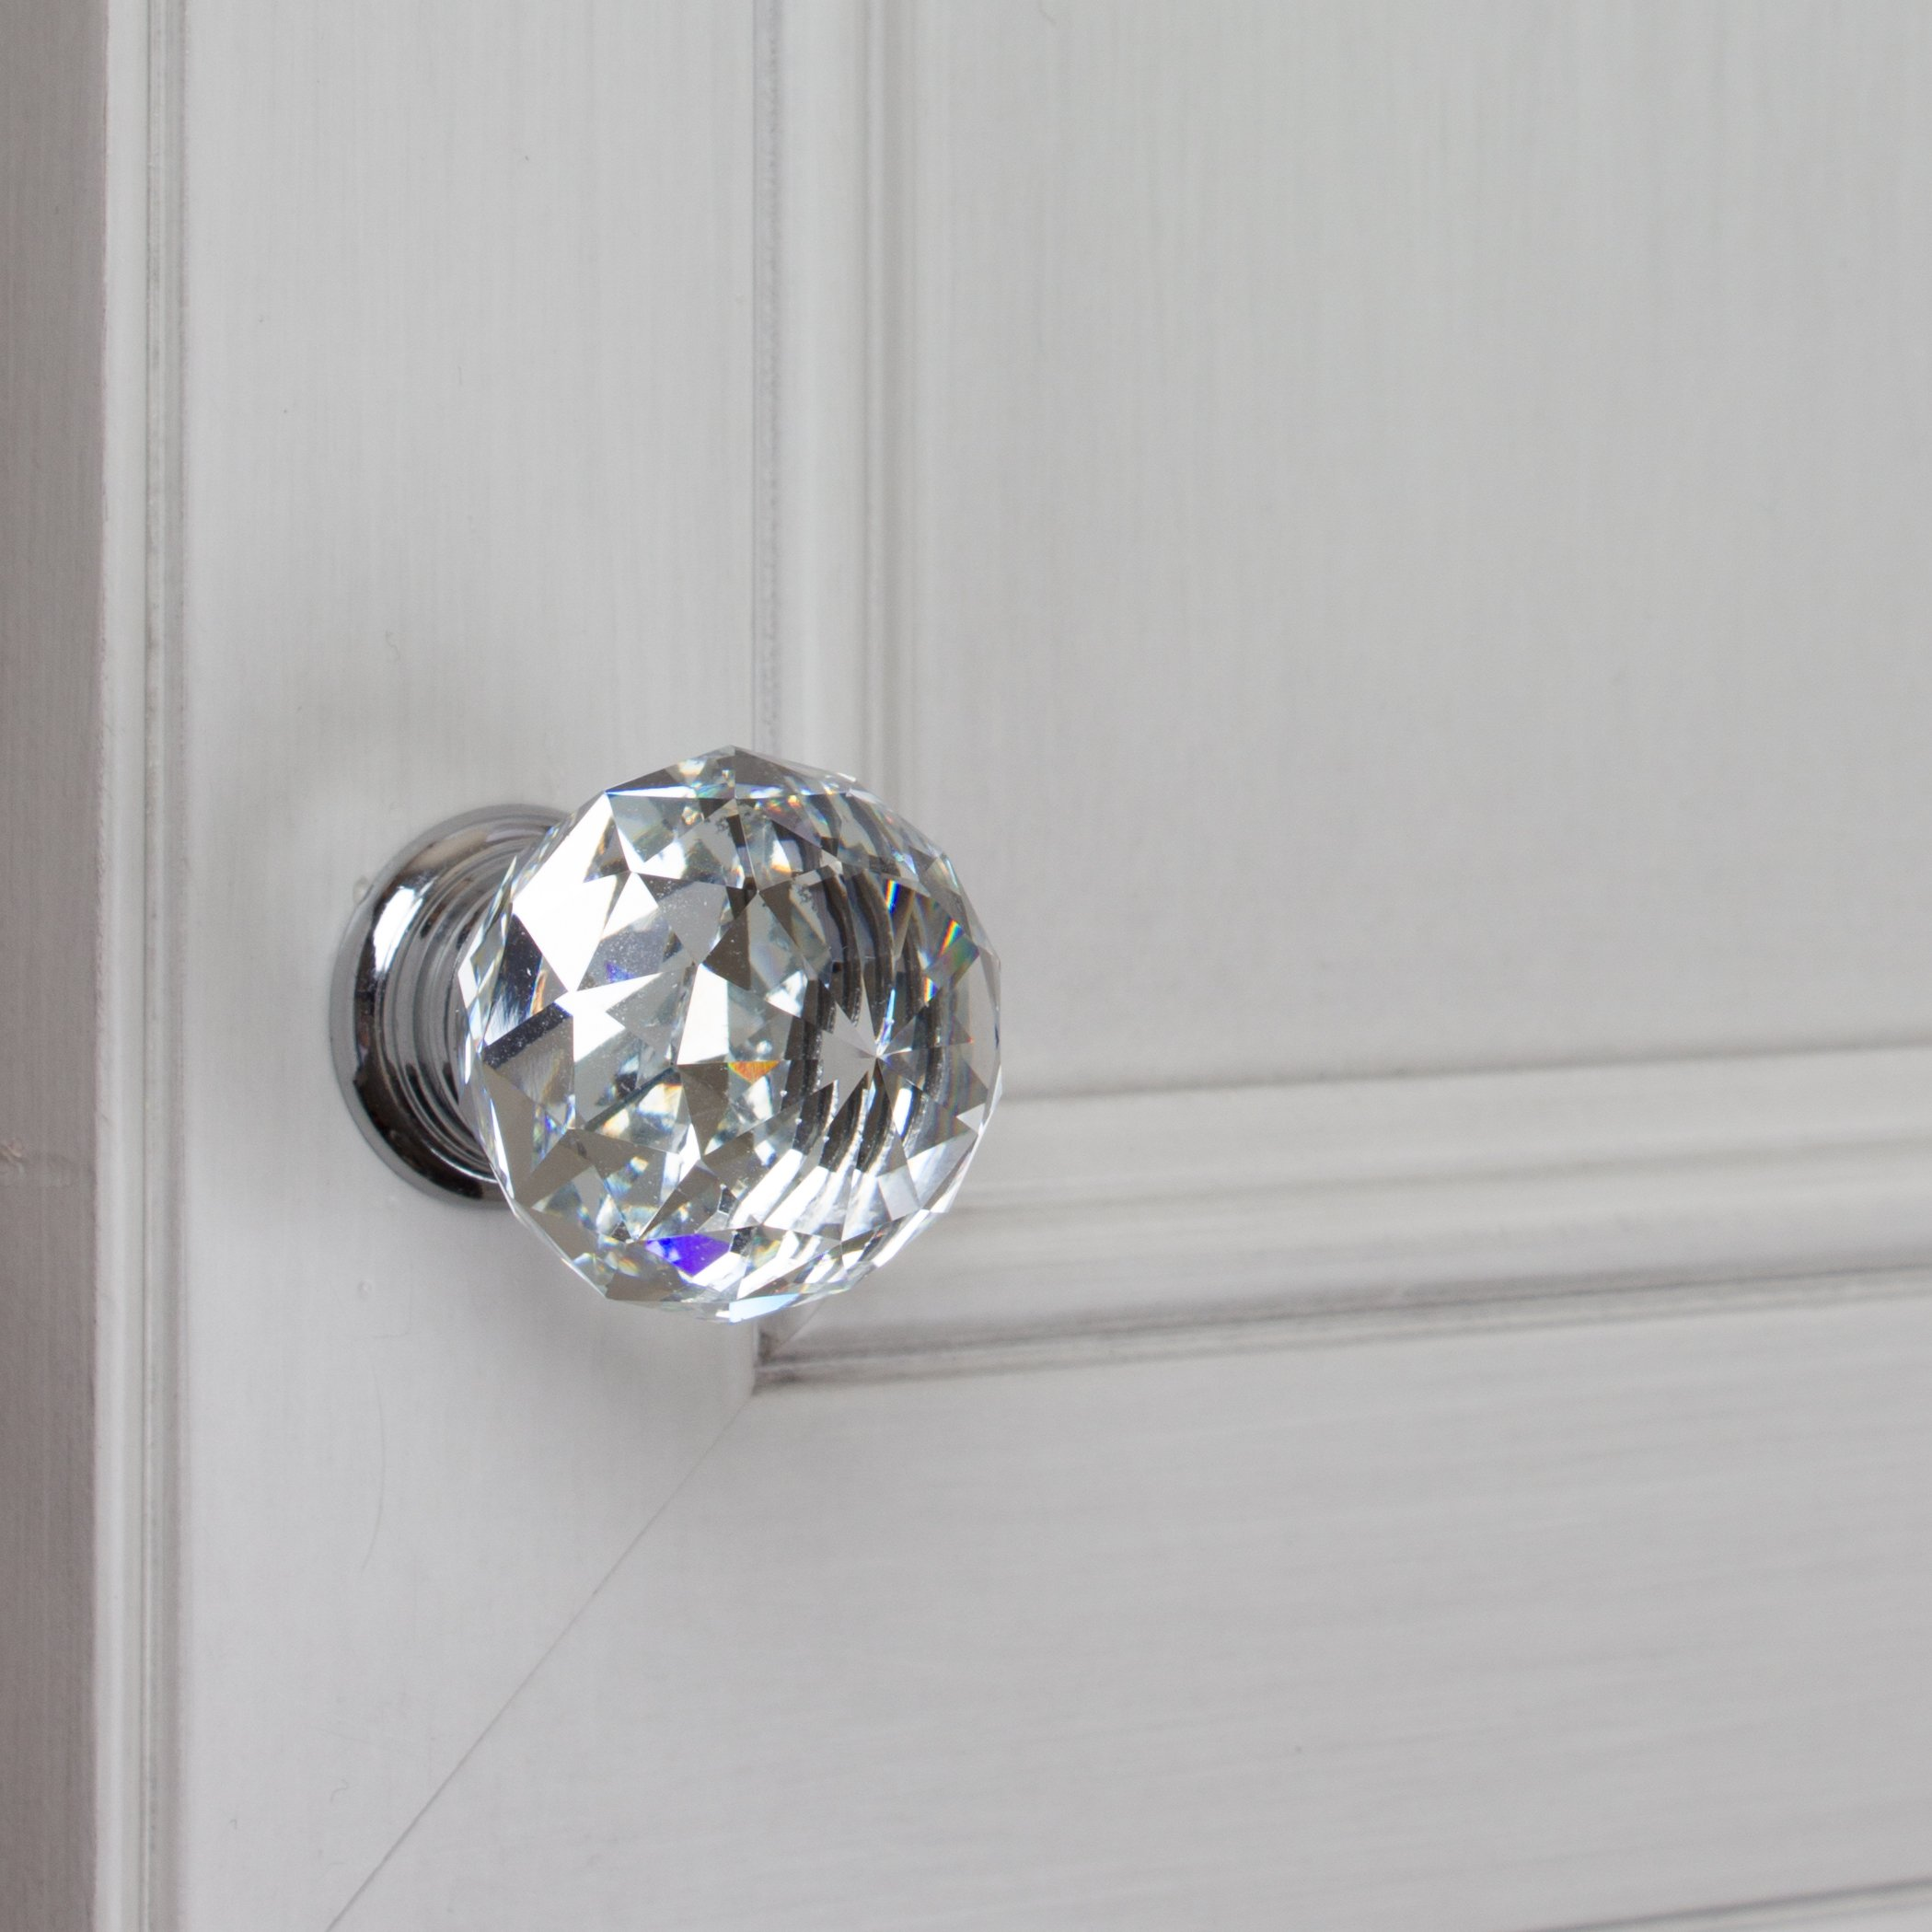 GlideRite Hardware 9003-CR-30-50 K9 Crystal with Polished Chrome Base Cabinet Knobs, 50 Pack, Small, Clear by GlideRite Hardware (Image #3)